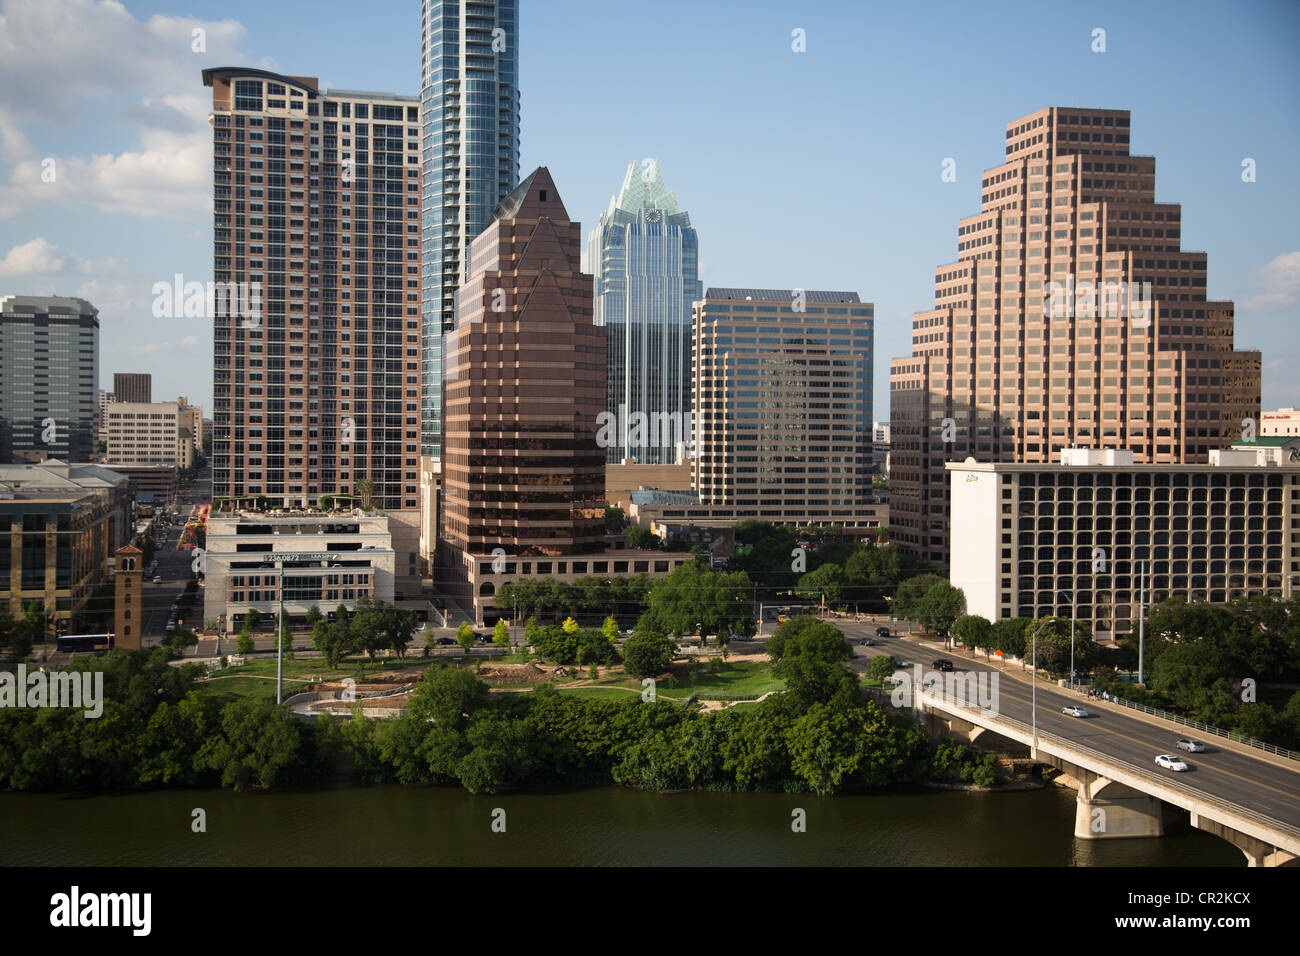 Downtown Austin, Texas Skyline Skyscrapers Looking North From Across  Ladybird Lake / Town Lake